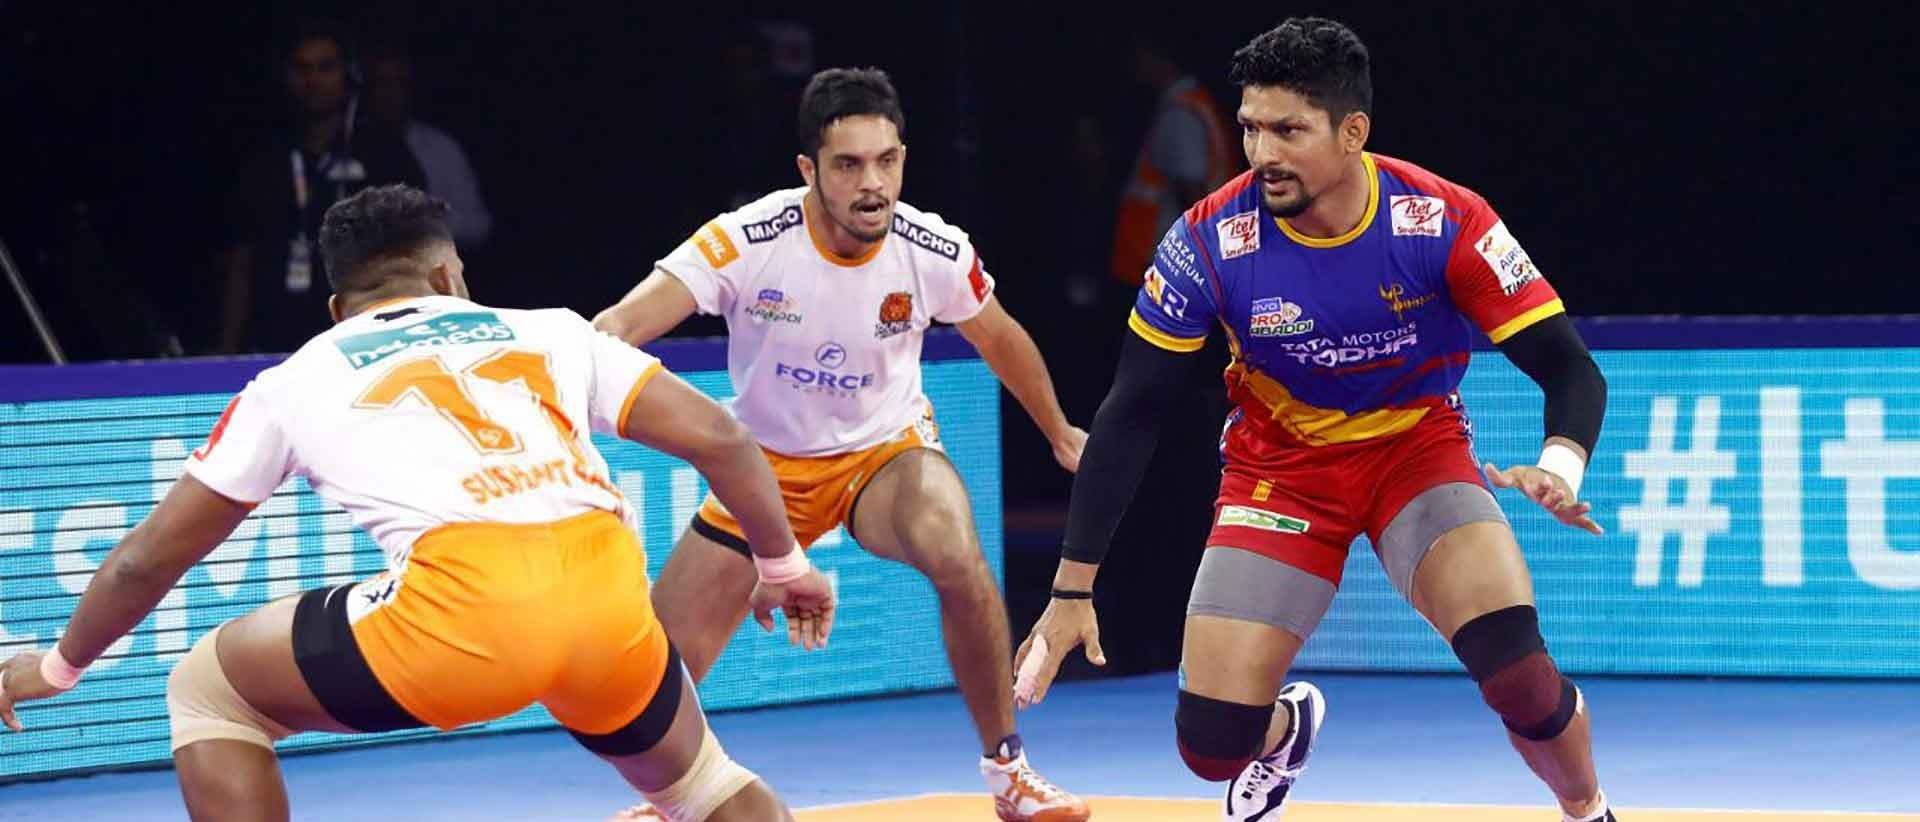 U.P. Yoddha emerge on top against Puneri Paltans in a close finish